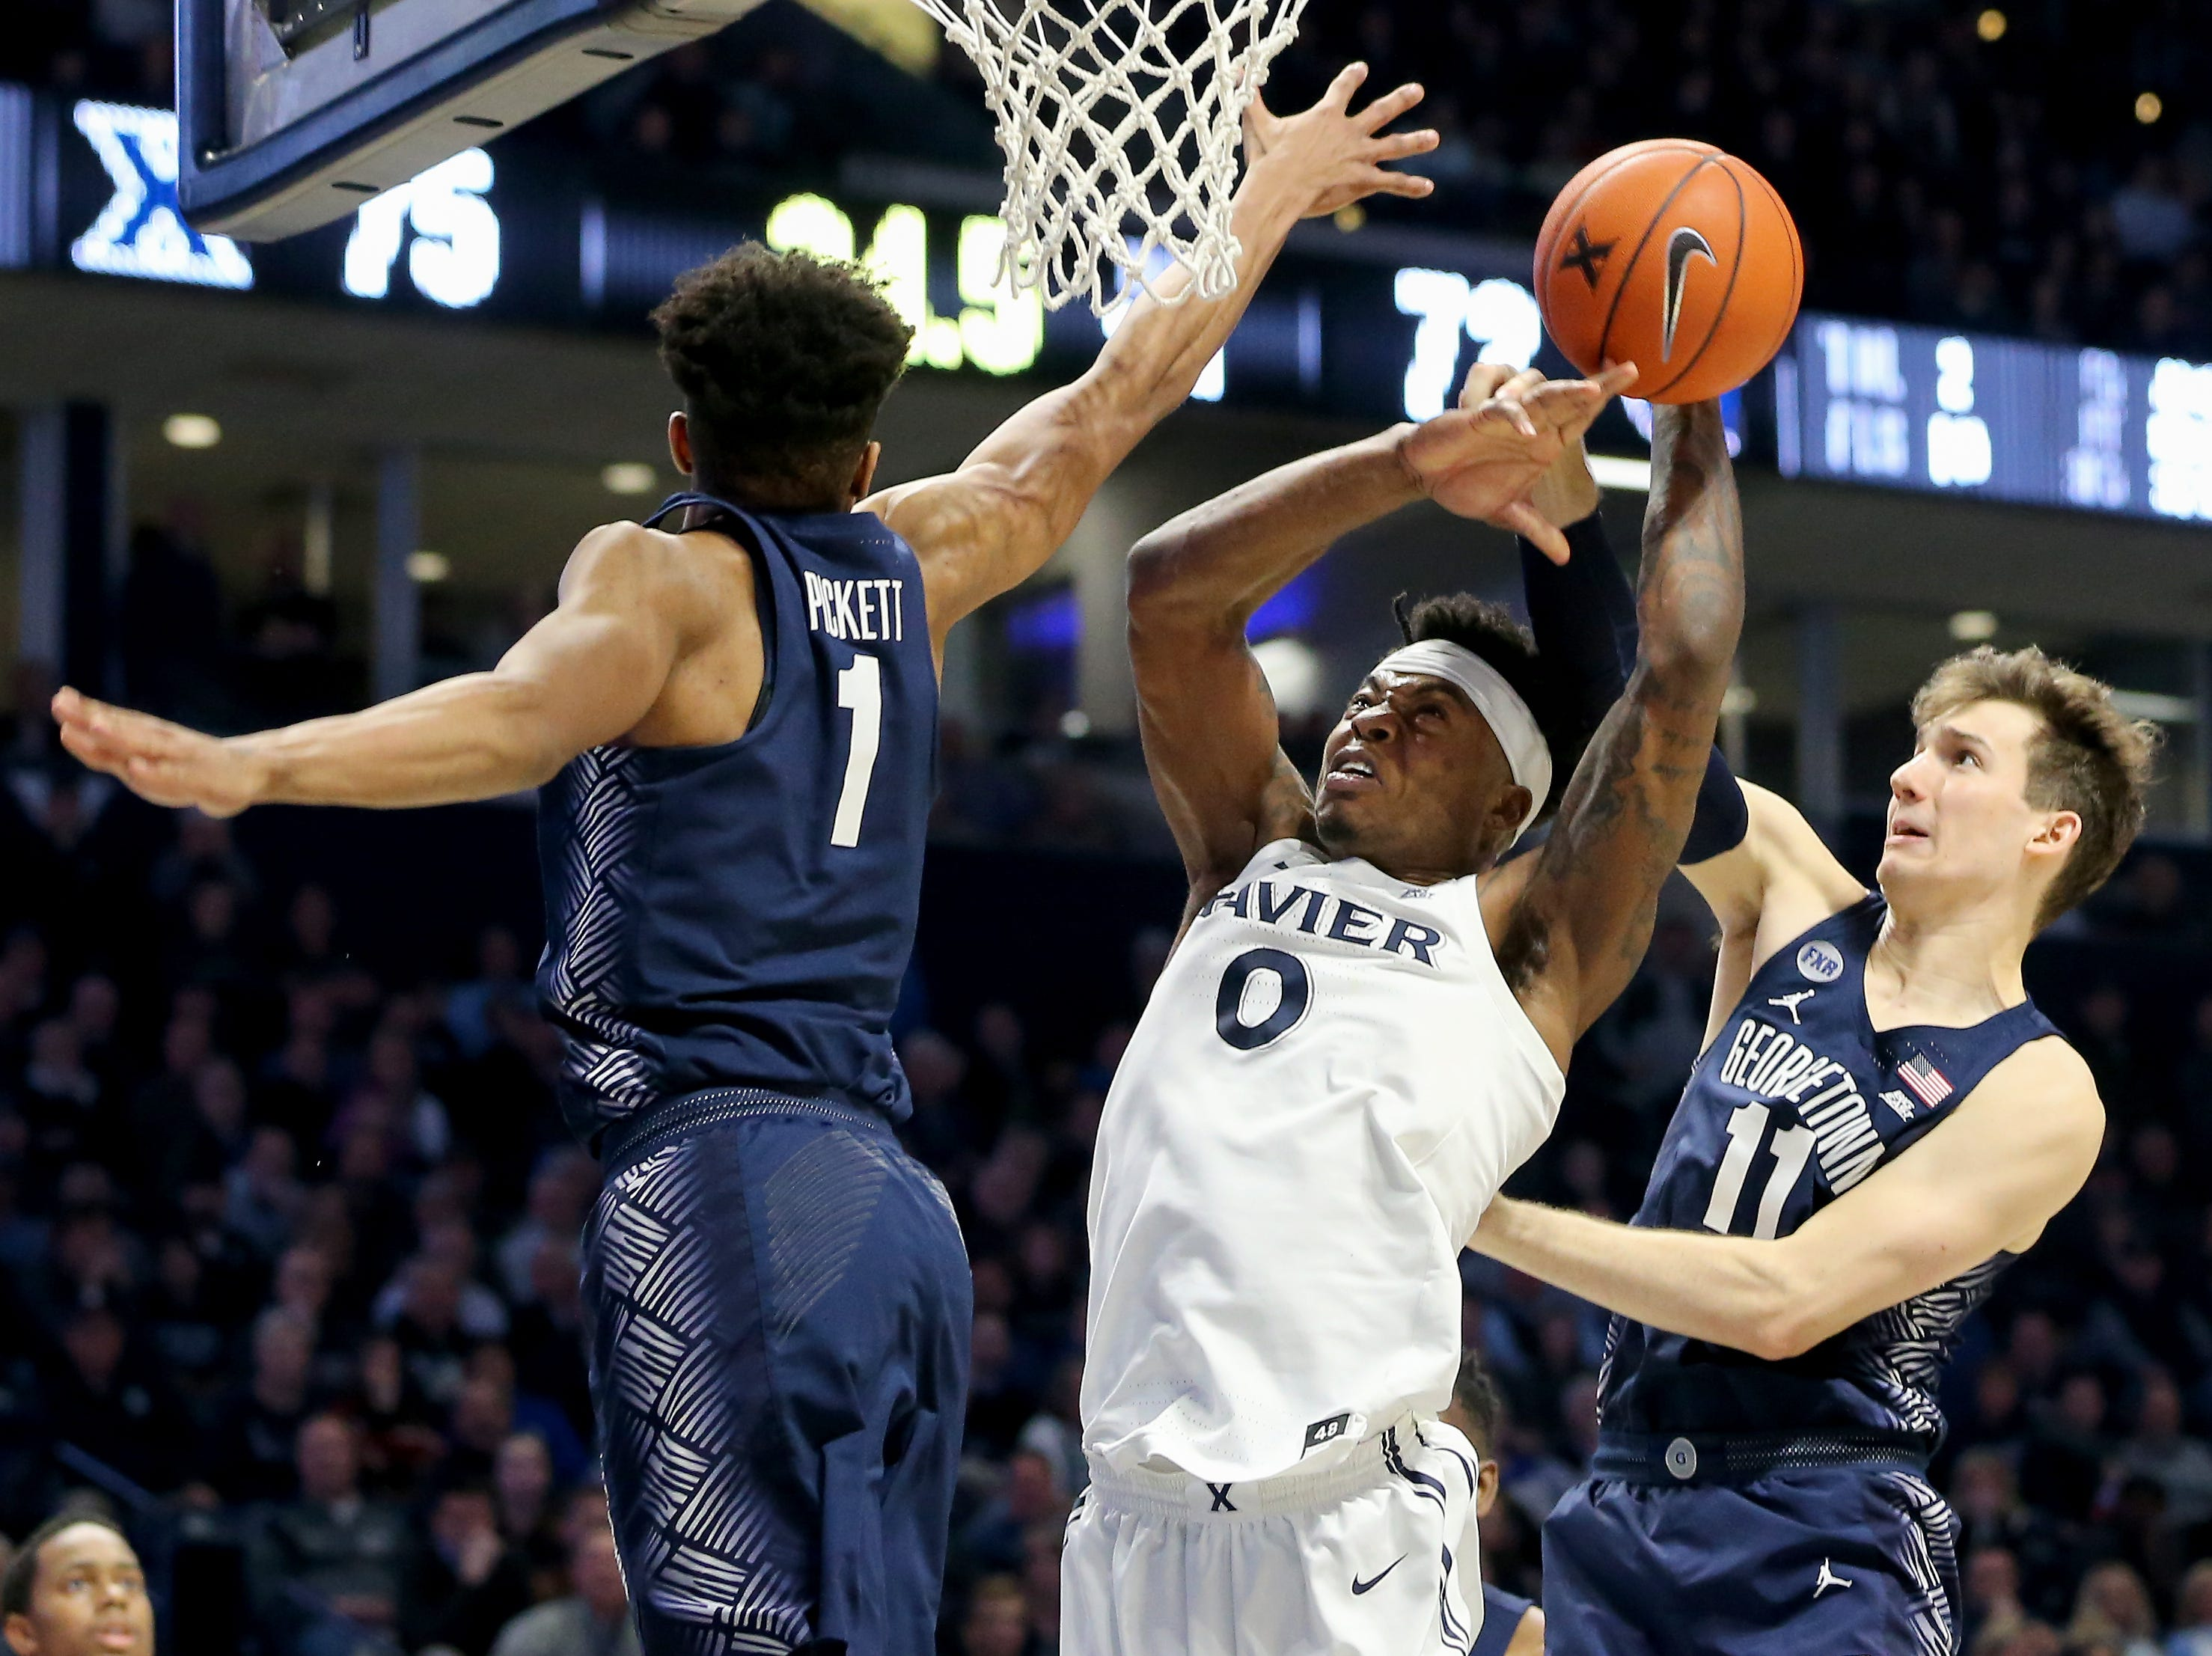 Xavier Musketeers forward Tyrique Jones (0) rises to the basket as Georgetown Hoyas guard Jamorko Pickett (1) and Georgetown Hoyas guard Greg Malinowski (11) defends in the second half of an NCAA basketball game, Wednesday, Jan. 9, 2019, at the Cintas Center in Cincinnati. Xavier Musketeers won 81-75 against the Georgetown Hoyas.